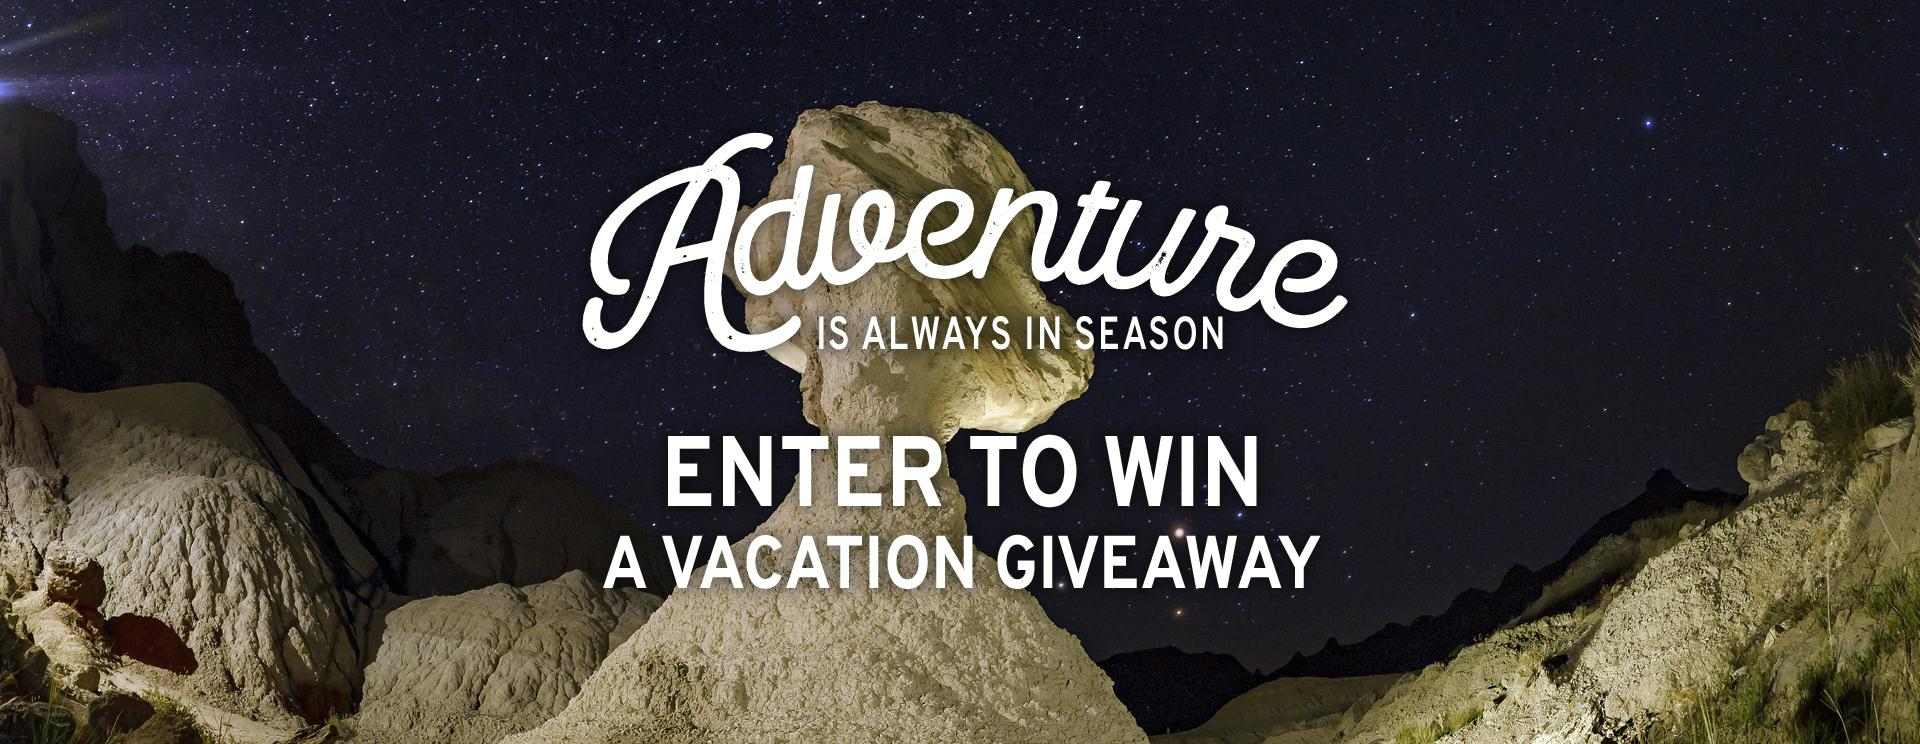 Great Escape Vacation Giveaway for StarTalk Listeners